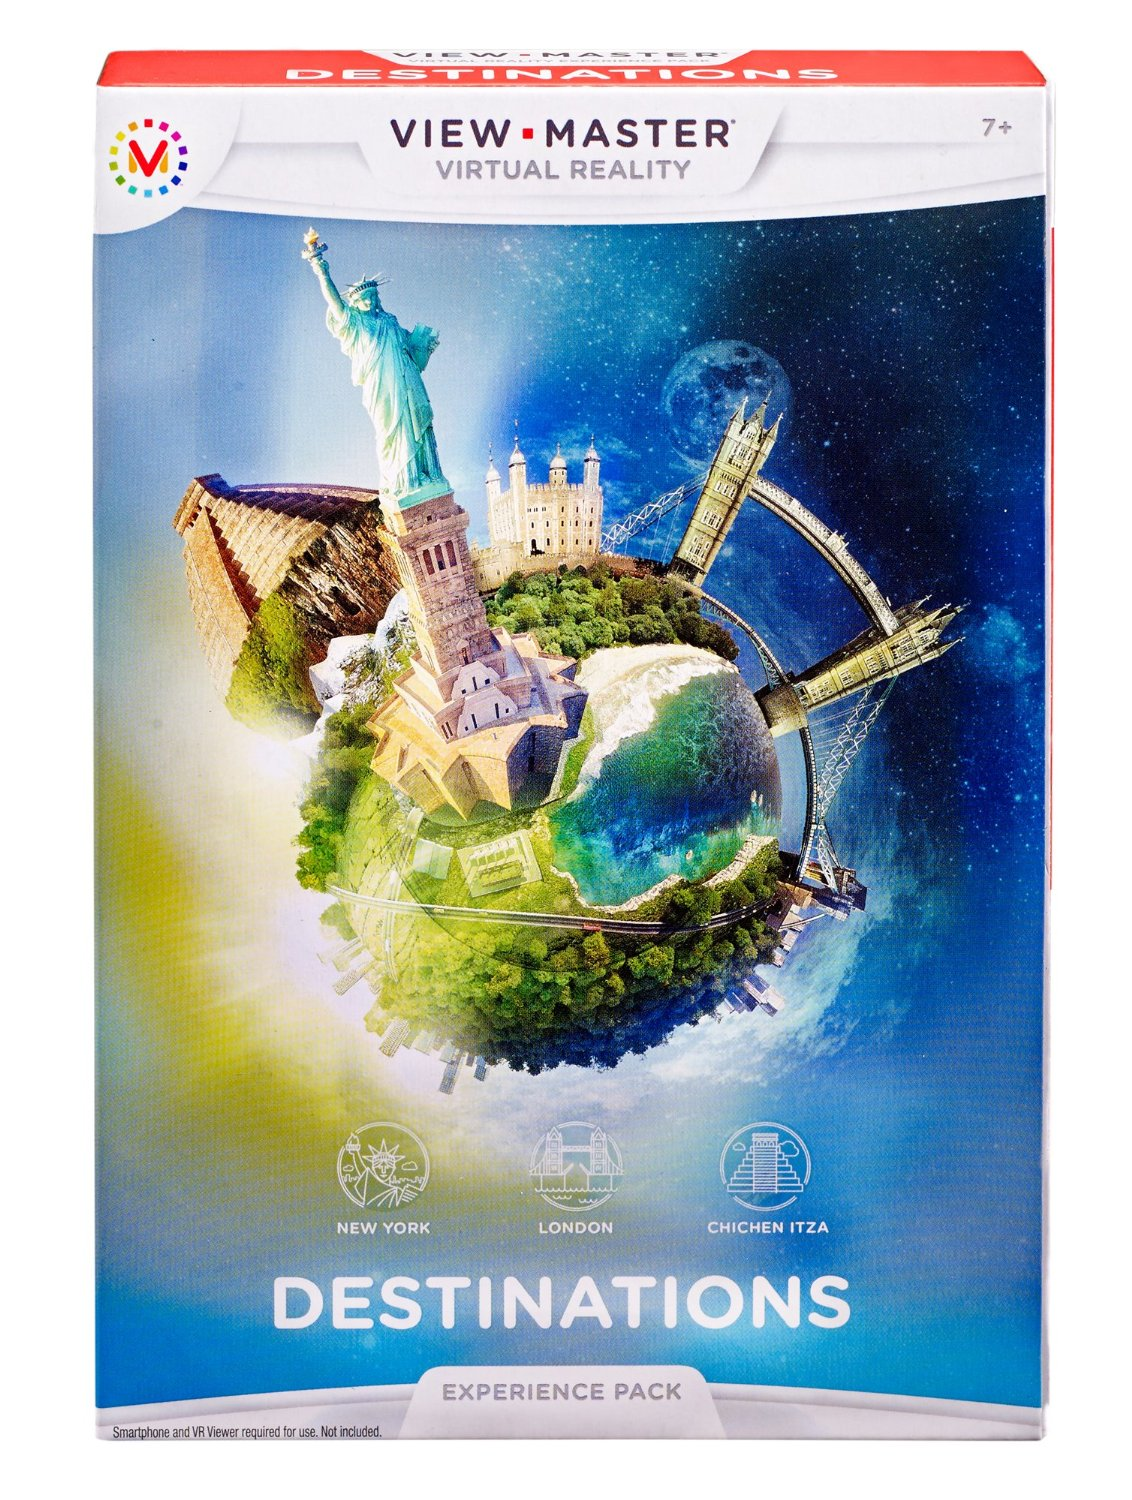 Viewmaster VR: Destinations Experience Pack